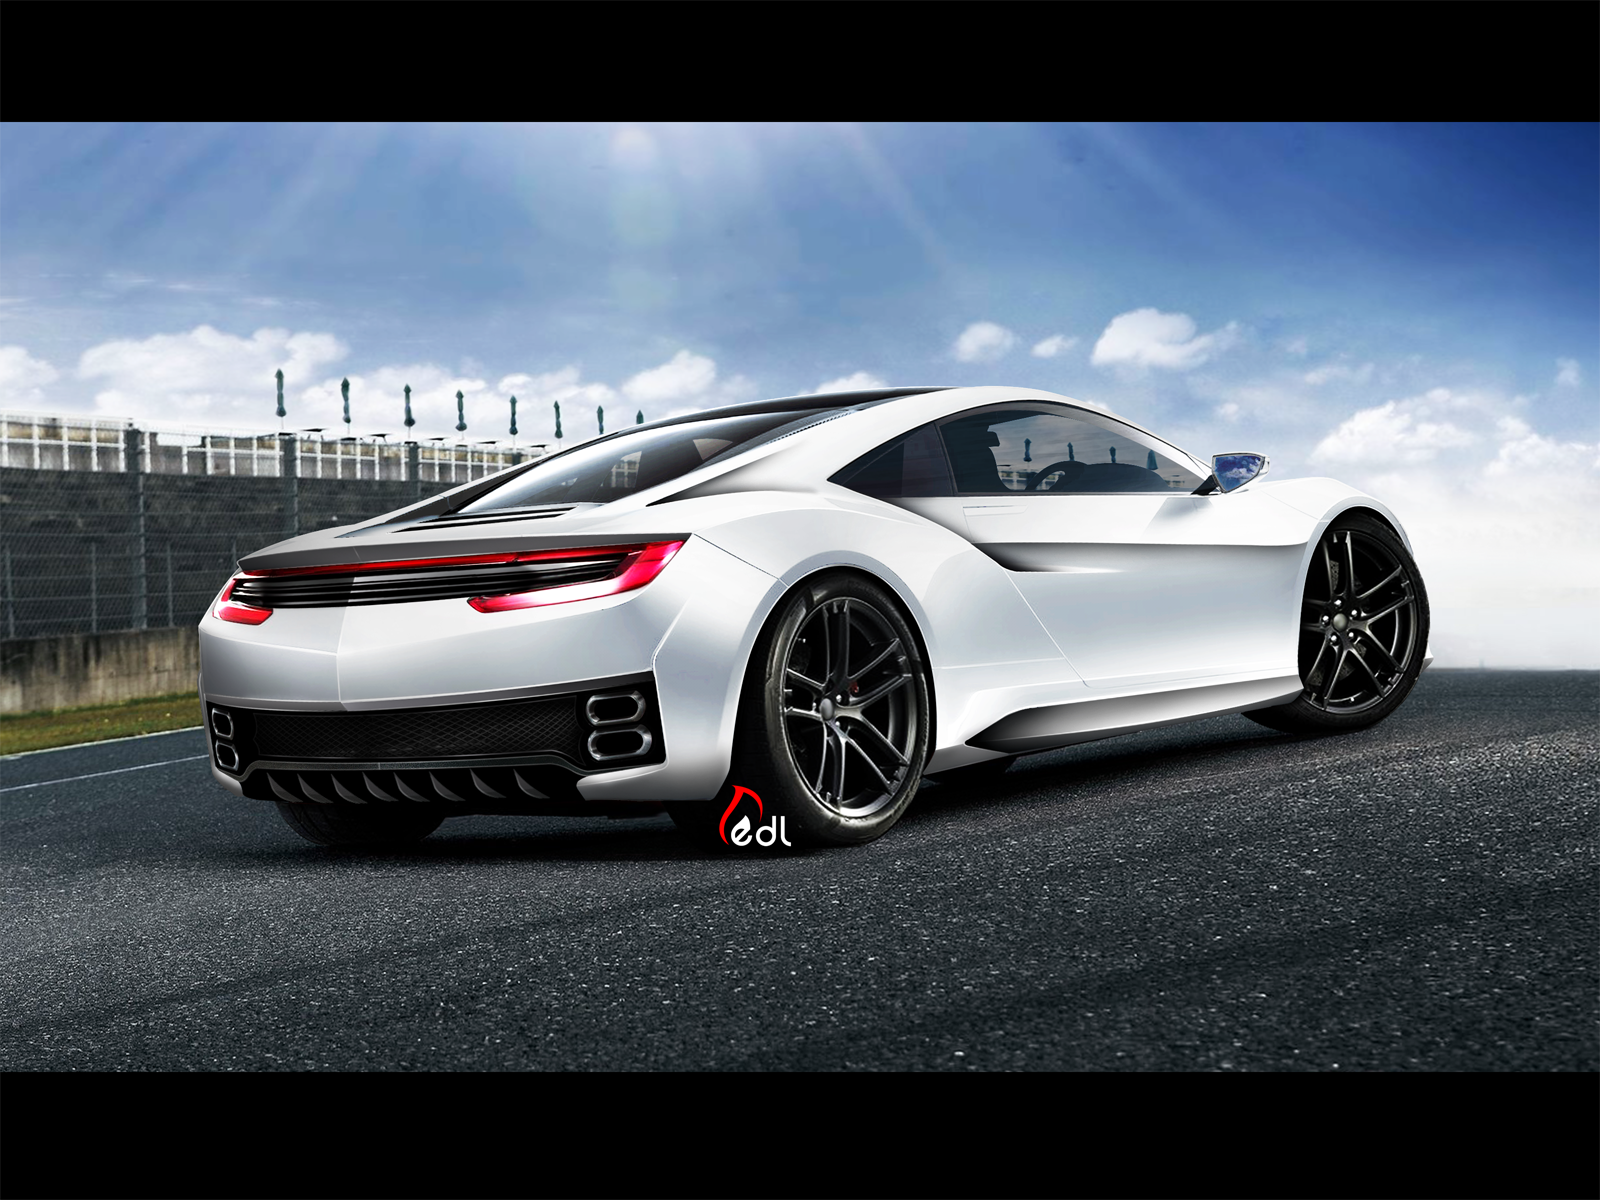 2018 Acura Nsx | Autos Specs, Prices and Release Date